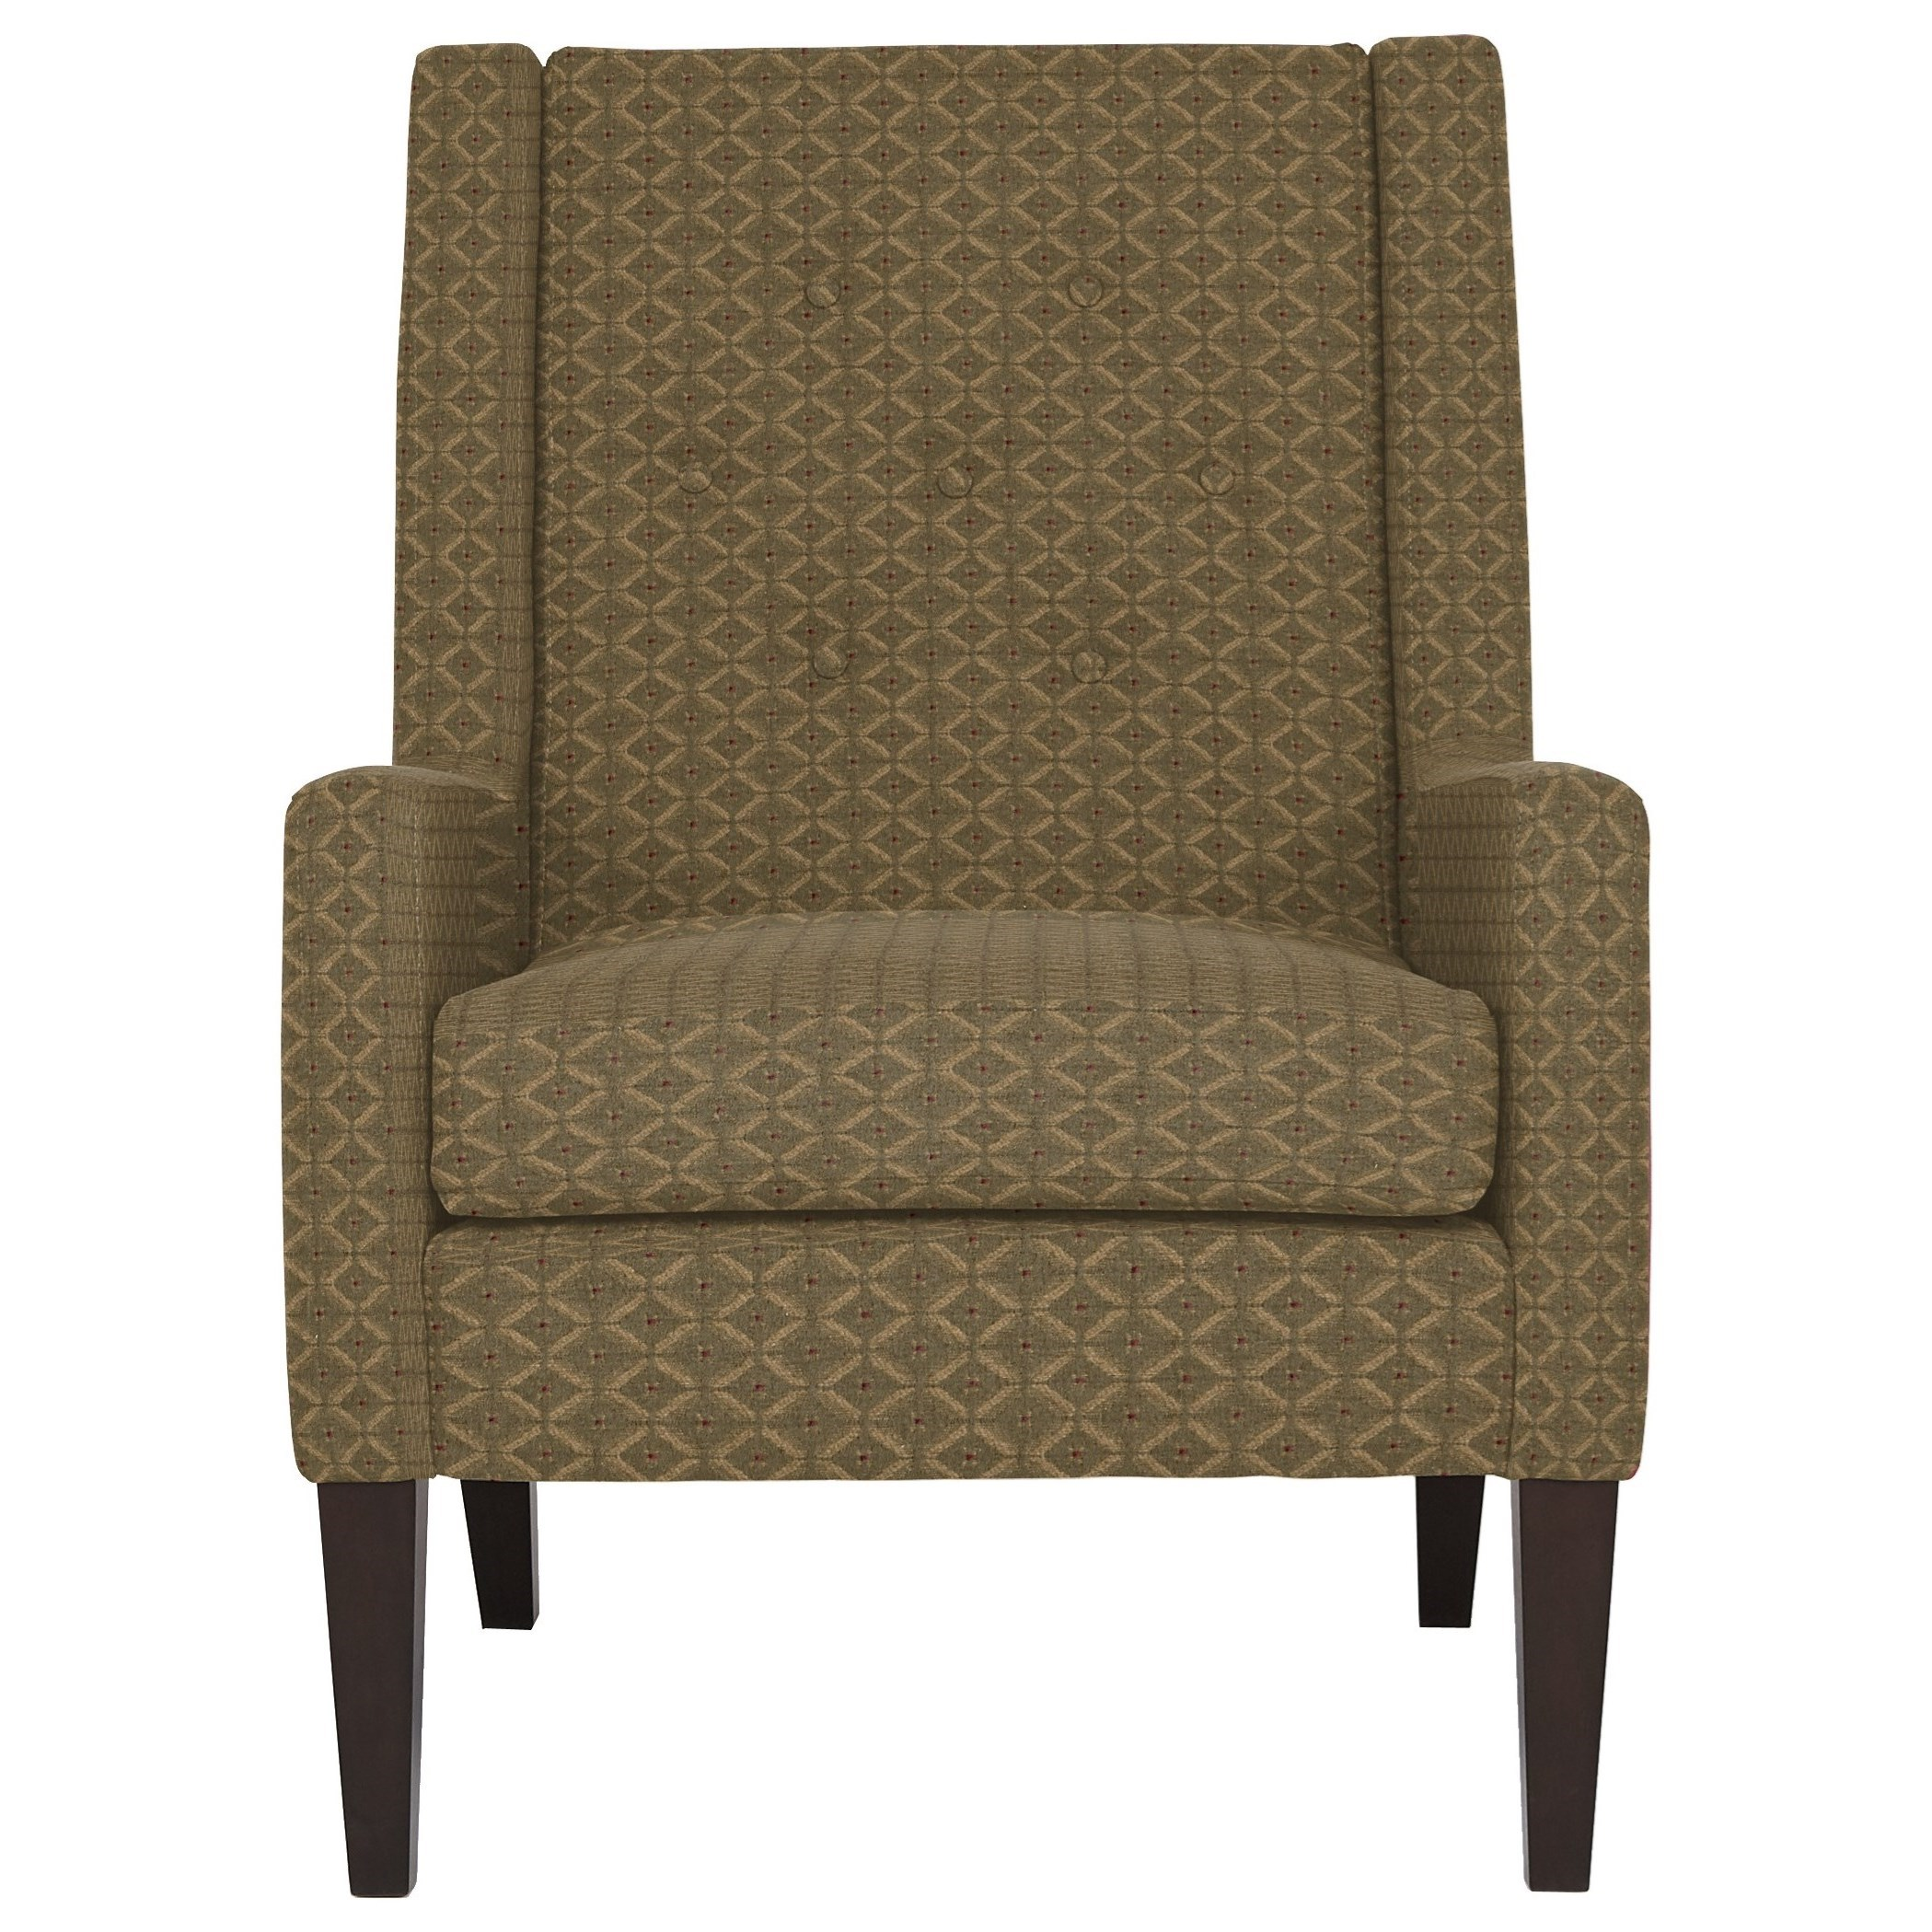 Best Home Furnishings Chairs - Accent Chair - Item Number: 2510E-18021